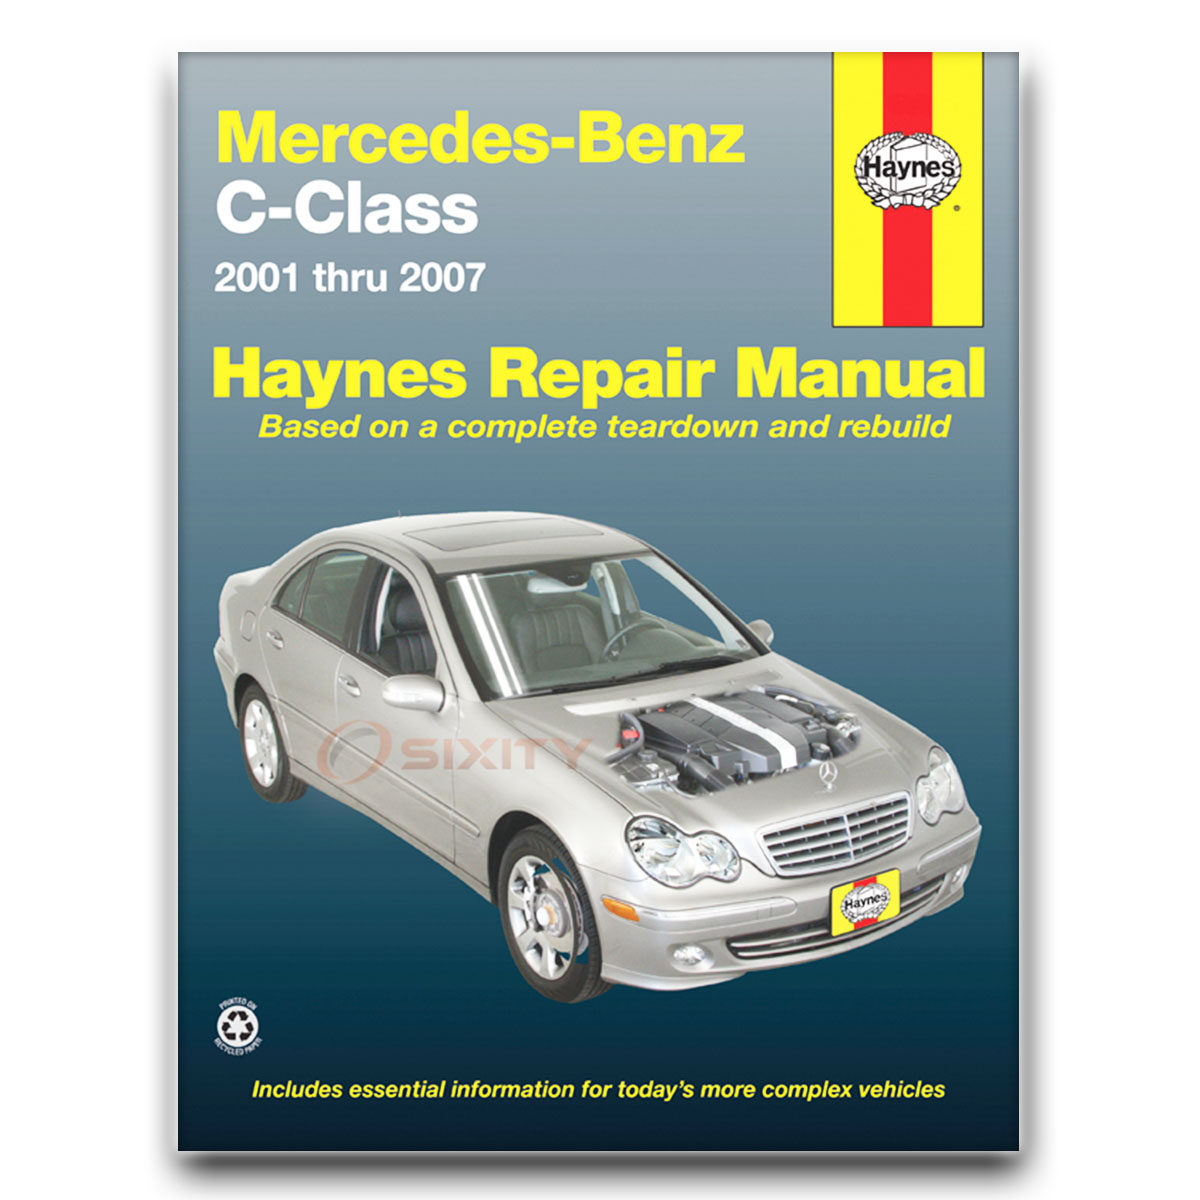 mercedes c230 haynes repair manual sport kompressor shop service rh ebay com 2000 Mercedes C220 1995 mercedes c220 owners manual